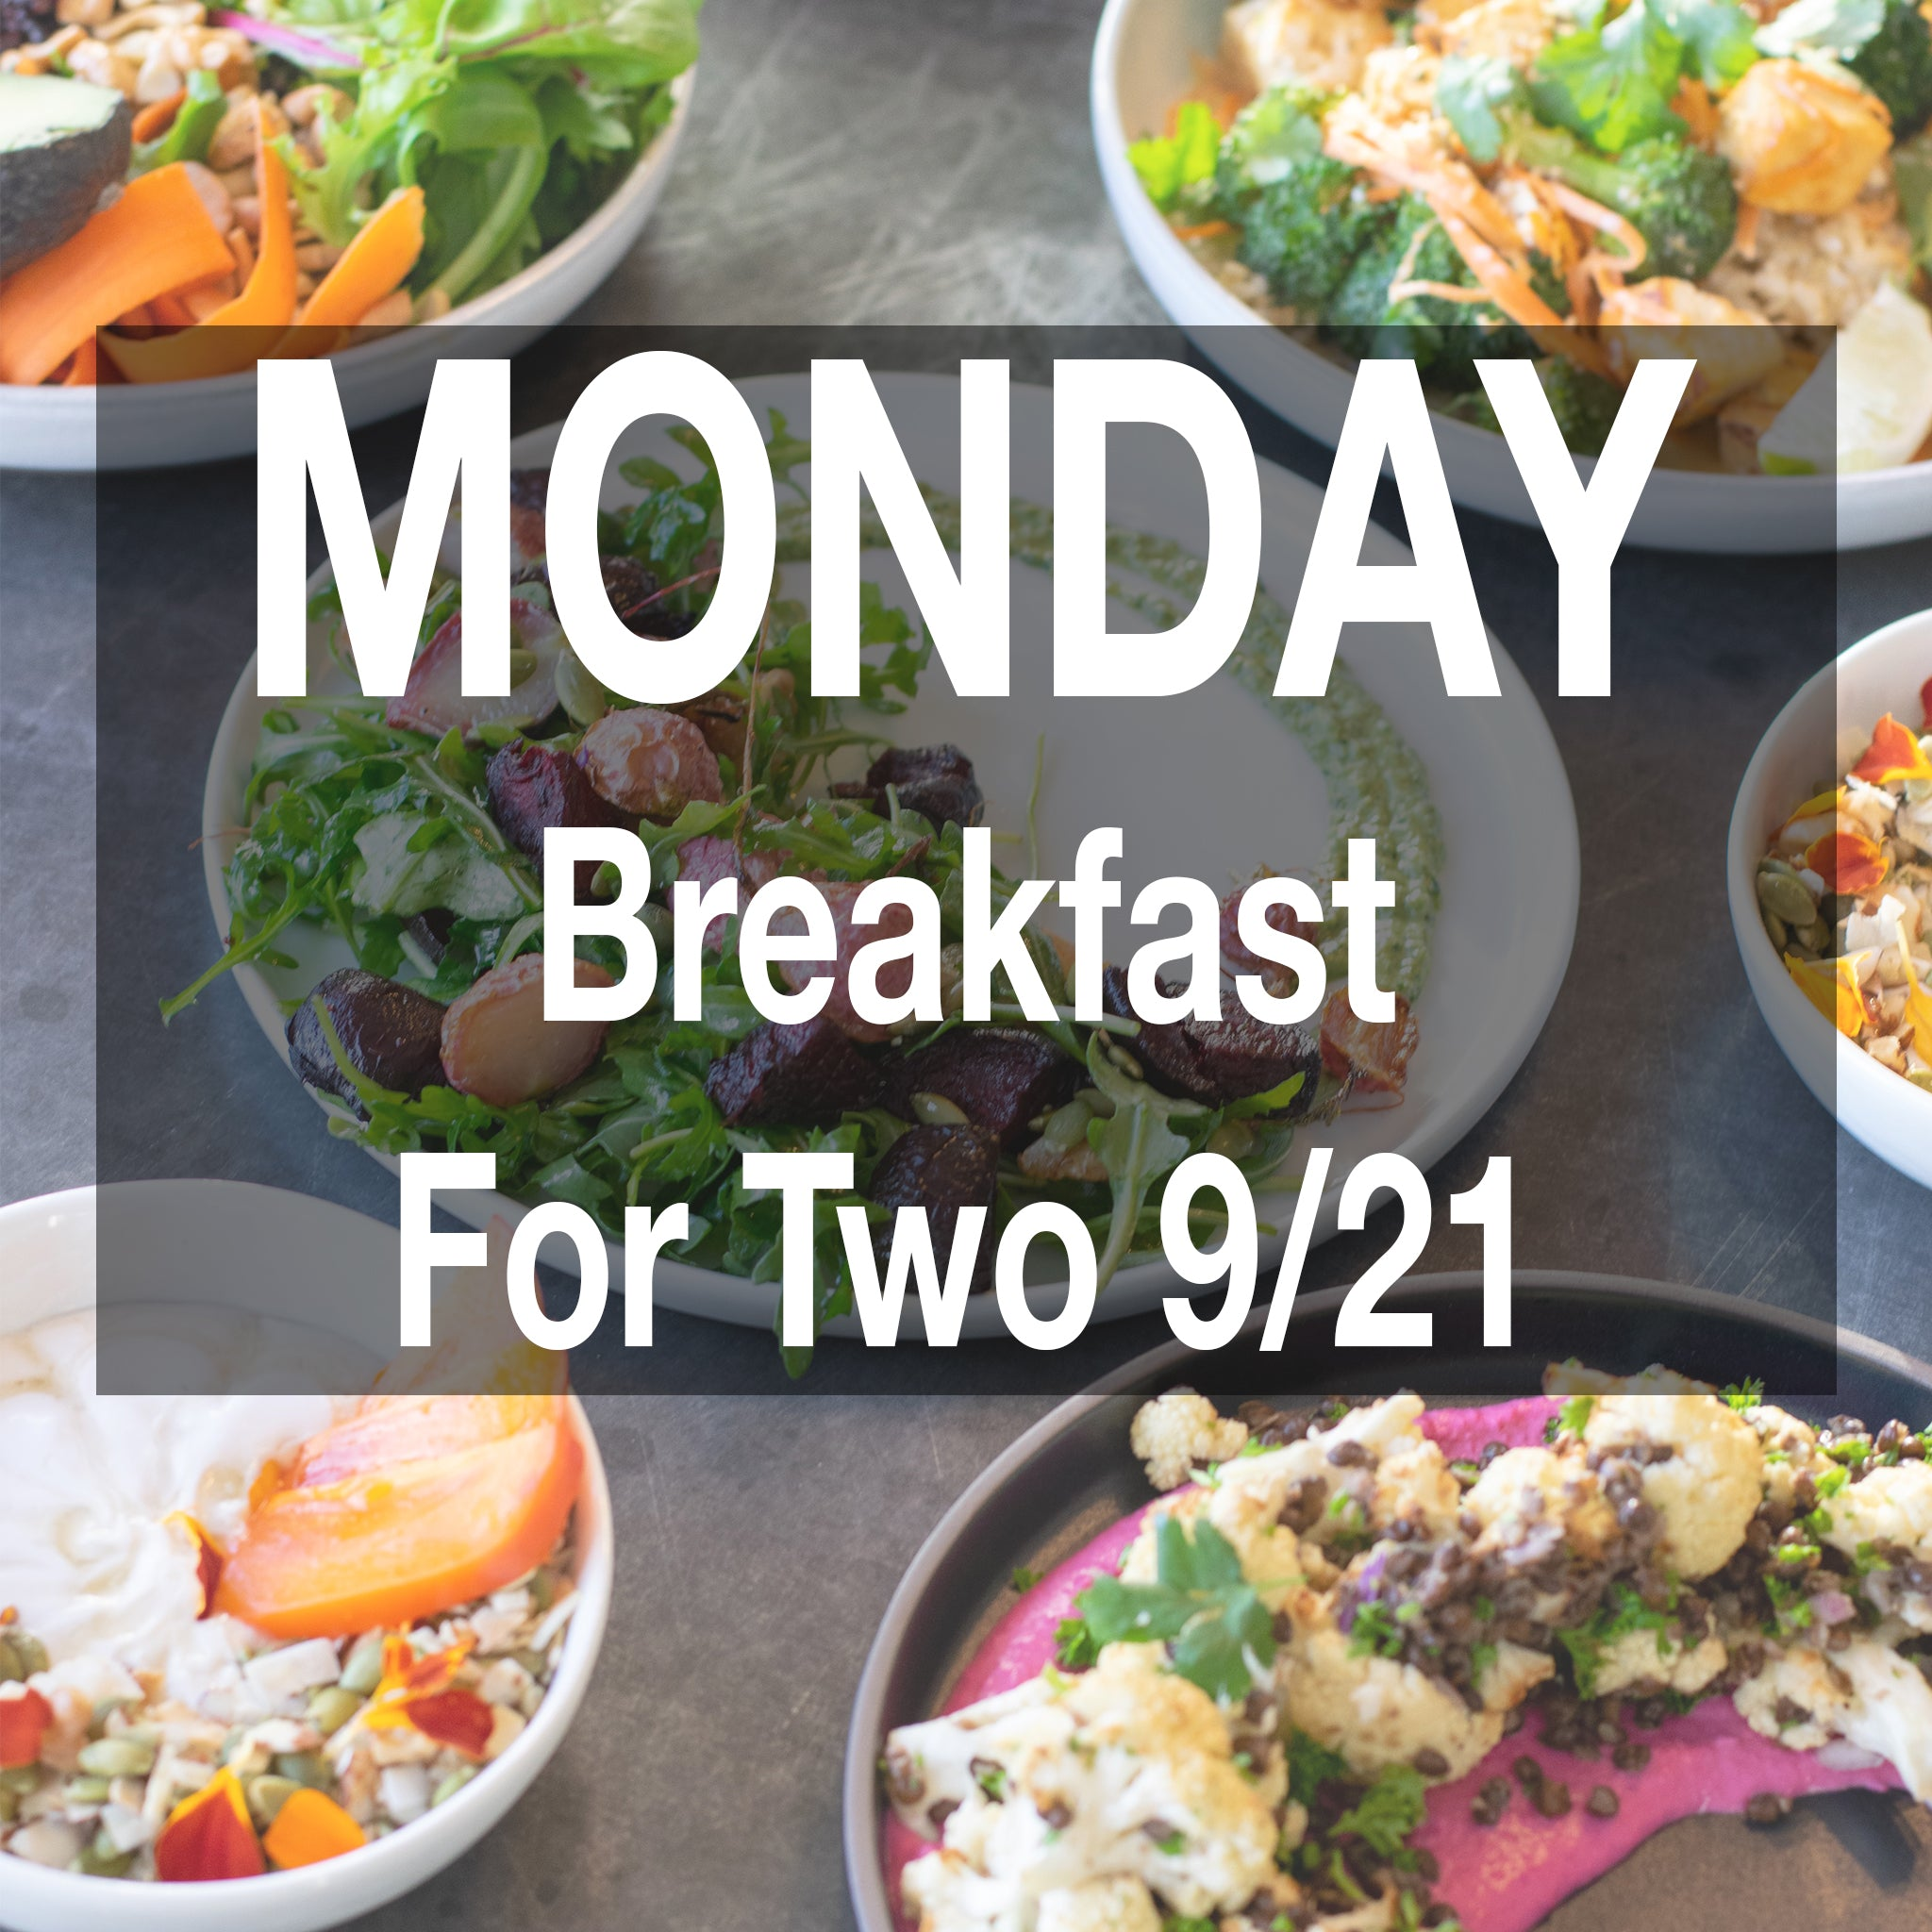 9/21 Monday Breakfast Meal --- For Two